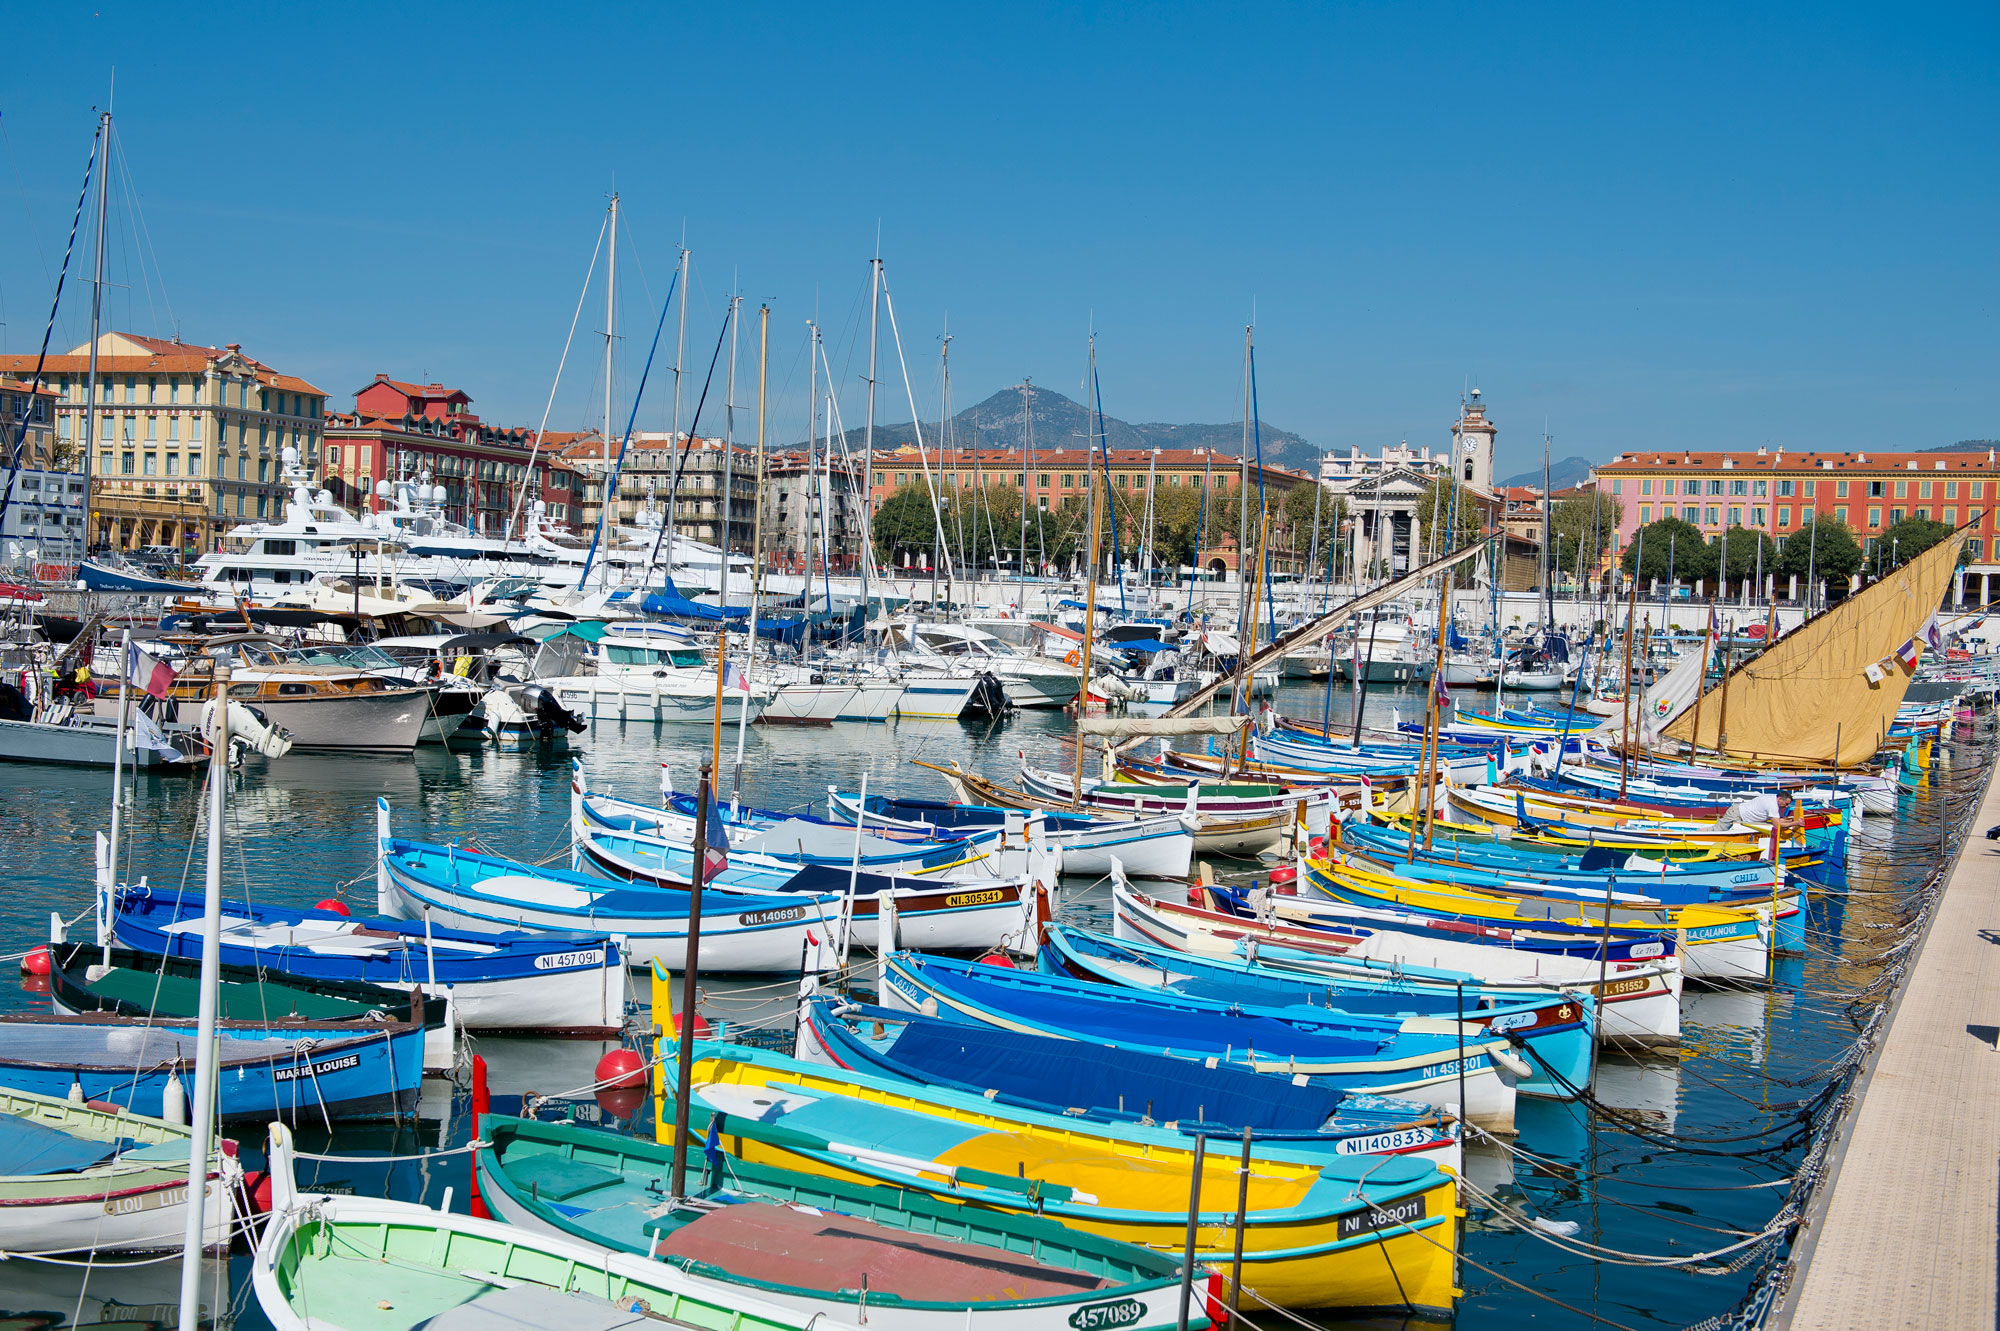 A Luxury Weekend Break On The Fabulous French Riviera – Antibes and Nice 15